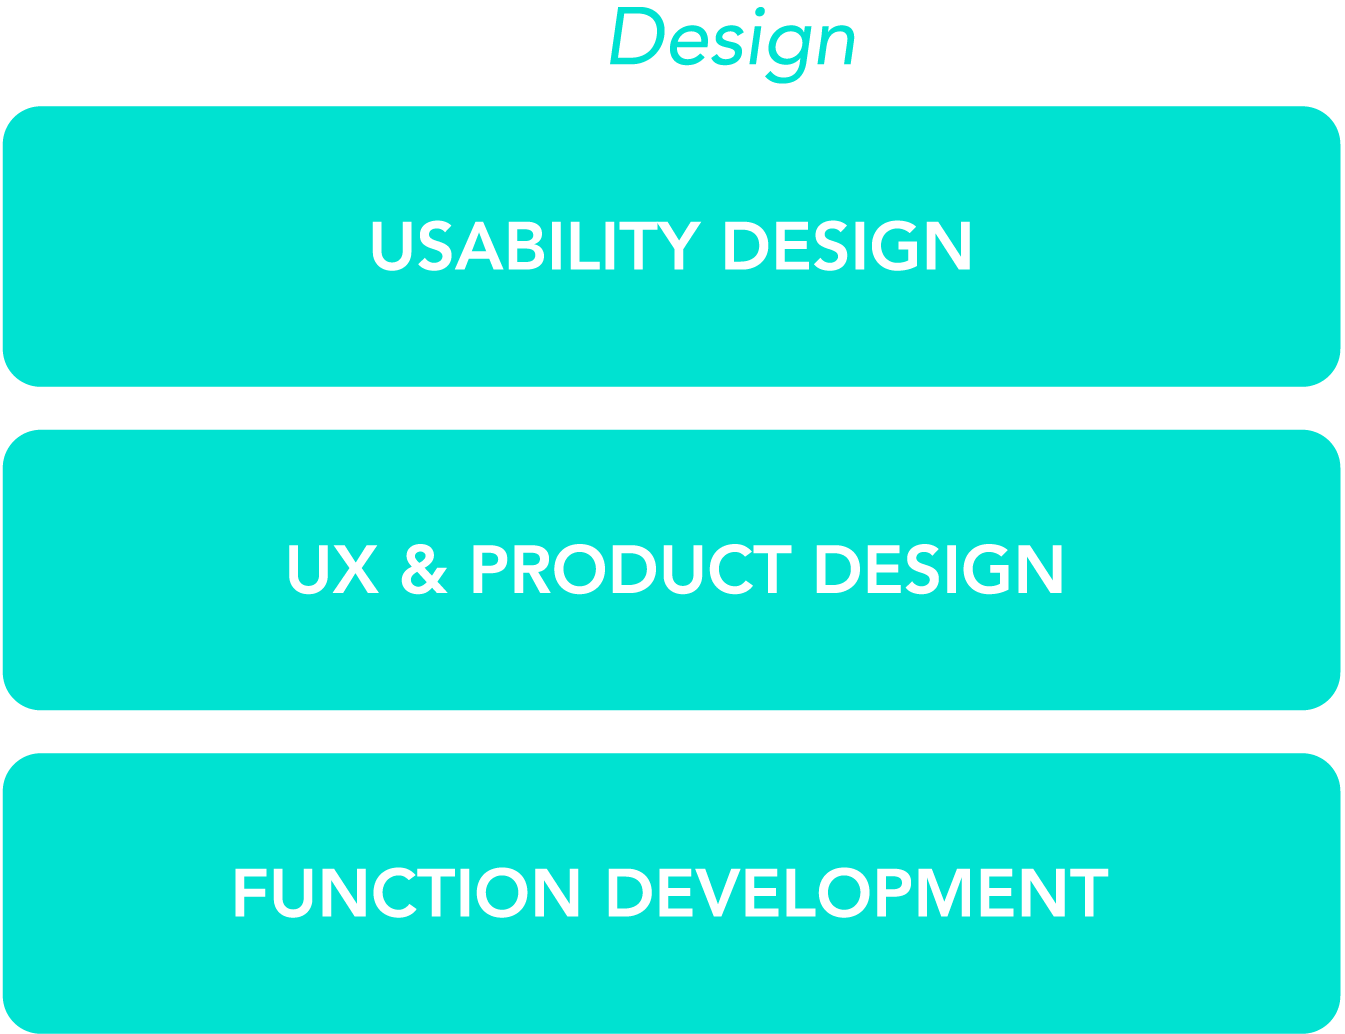 Product development design